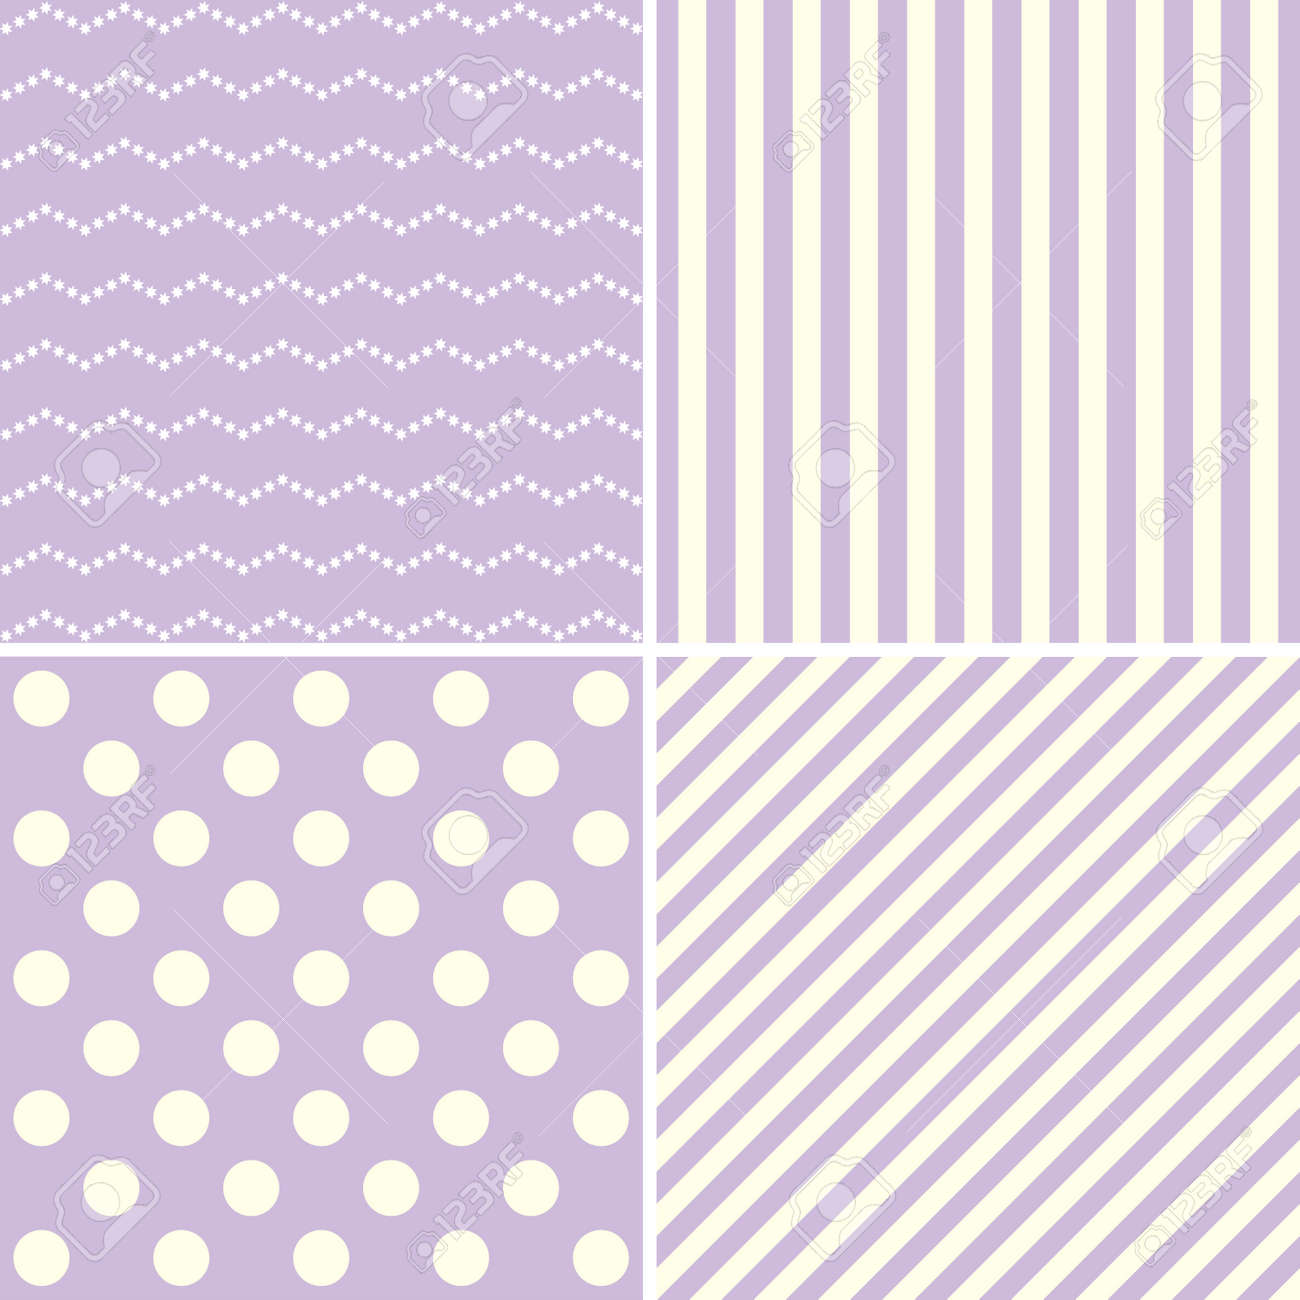 Set Of Four Cute Retro Backgrounds In Pastel Colors For Baby Stock Photo Picture And Royalty Free Image Image 46448440